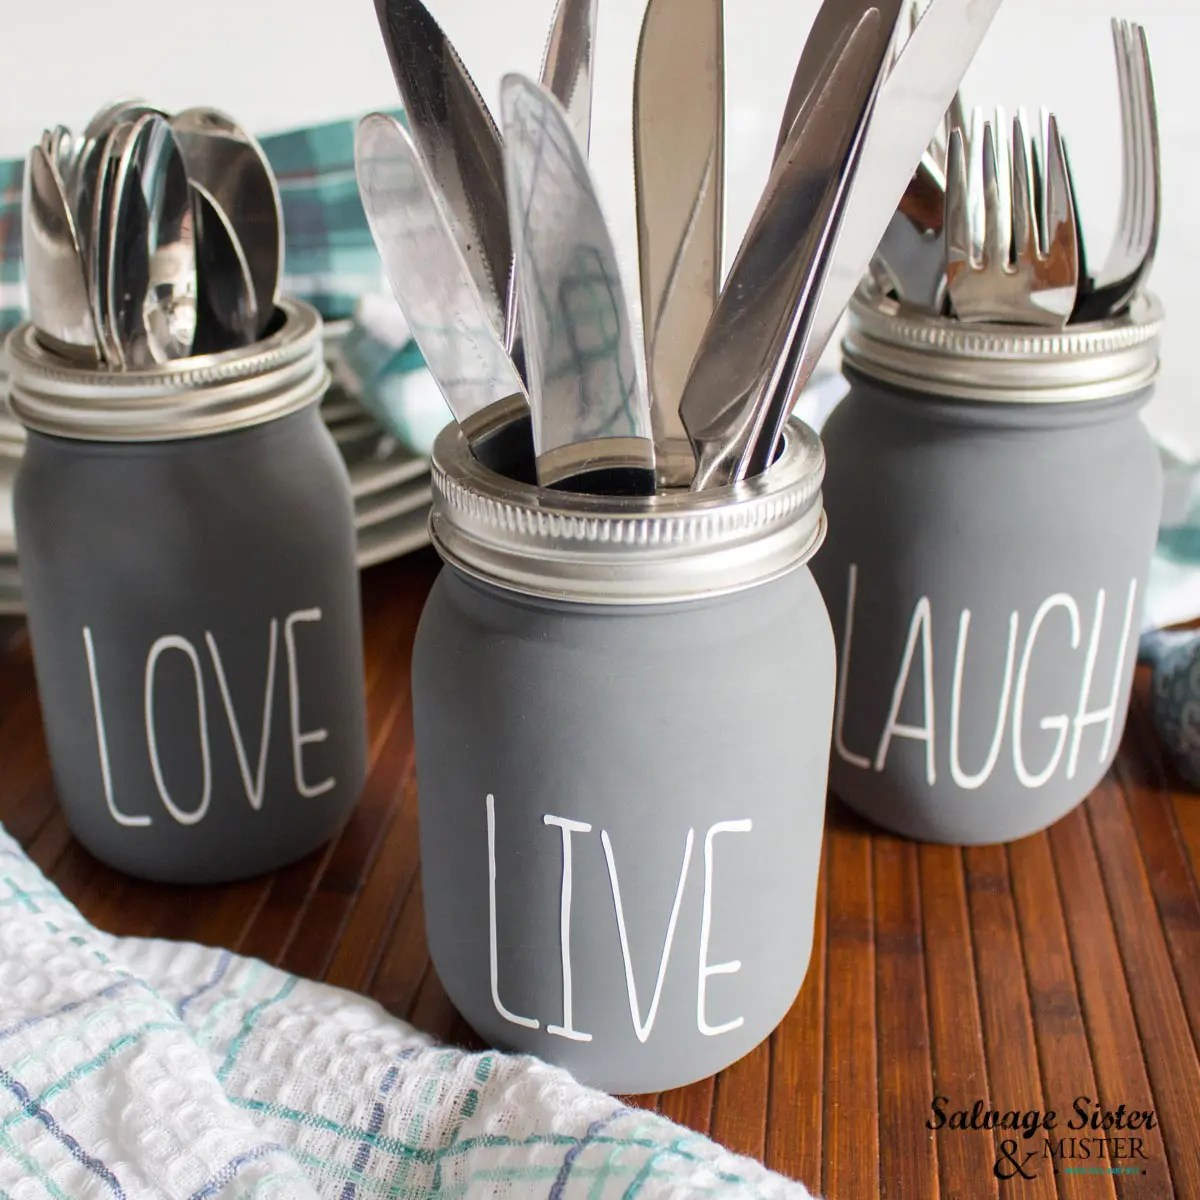 All three dark grey chalky painted mason jars with LIVE, LAUGH, LOVE decals, filled with different silverware respectively. The jars are on a cherry wood surface with tea towel in foreground and stack of plates in the background.